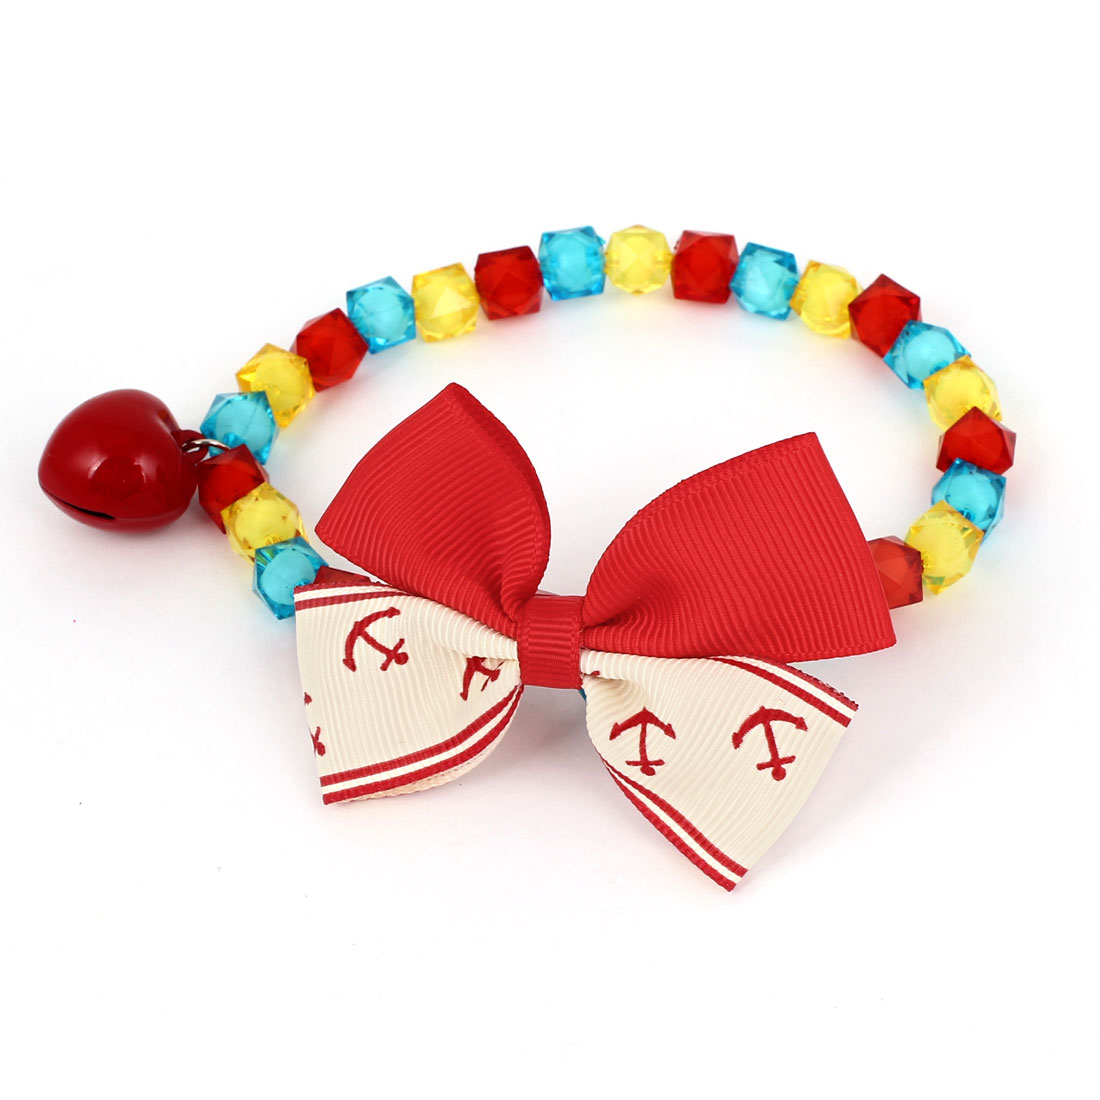 Metal Bell Pendant Bowtie Accent Pet Dog Plastic Faceted Beads Collar Necklace Assorted Color M